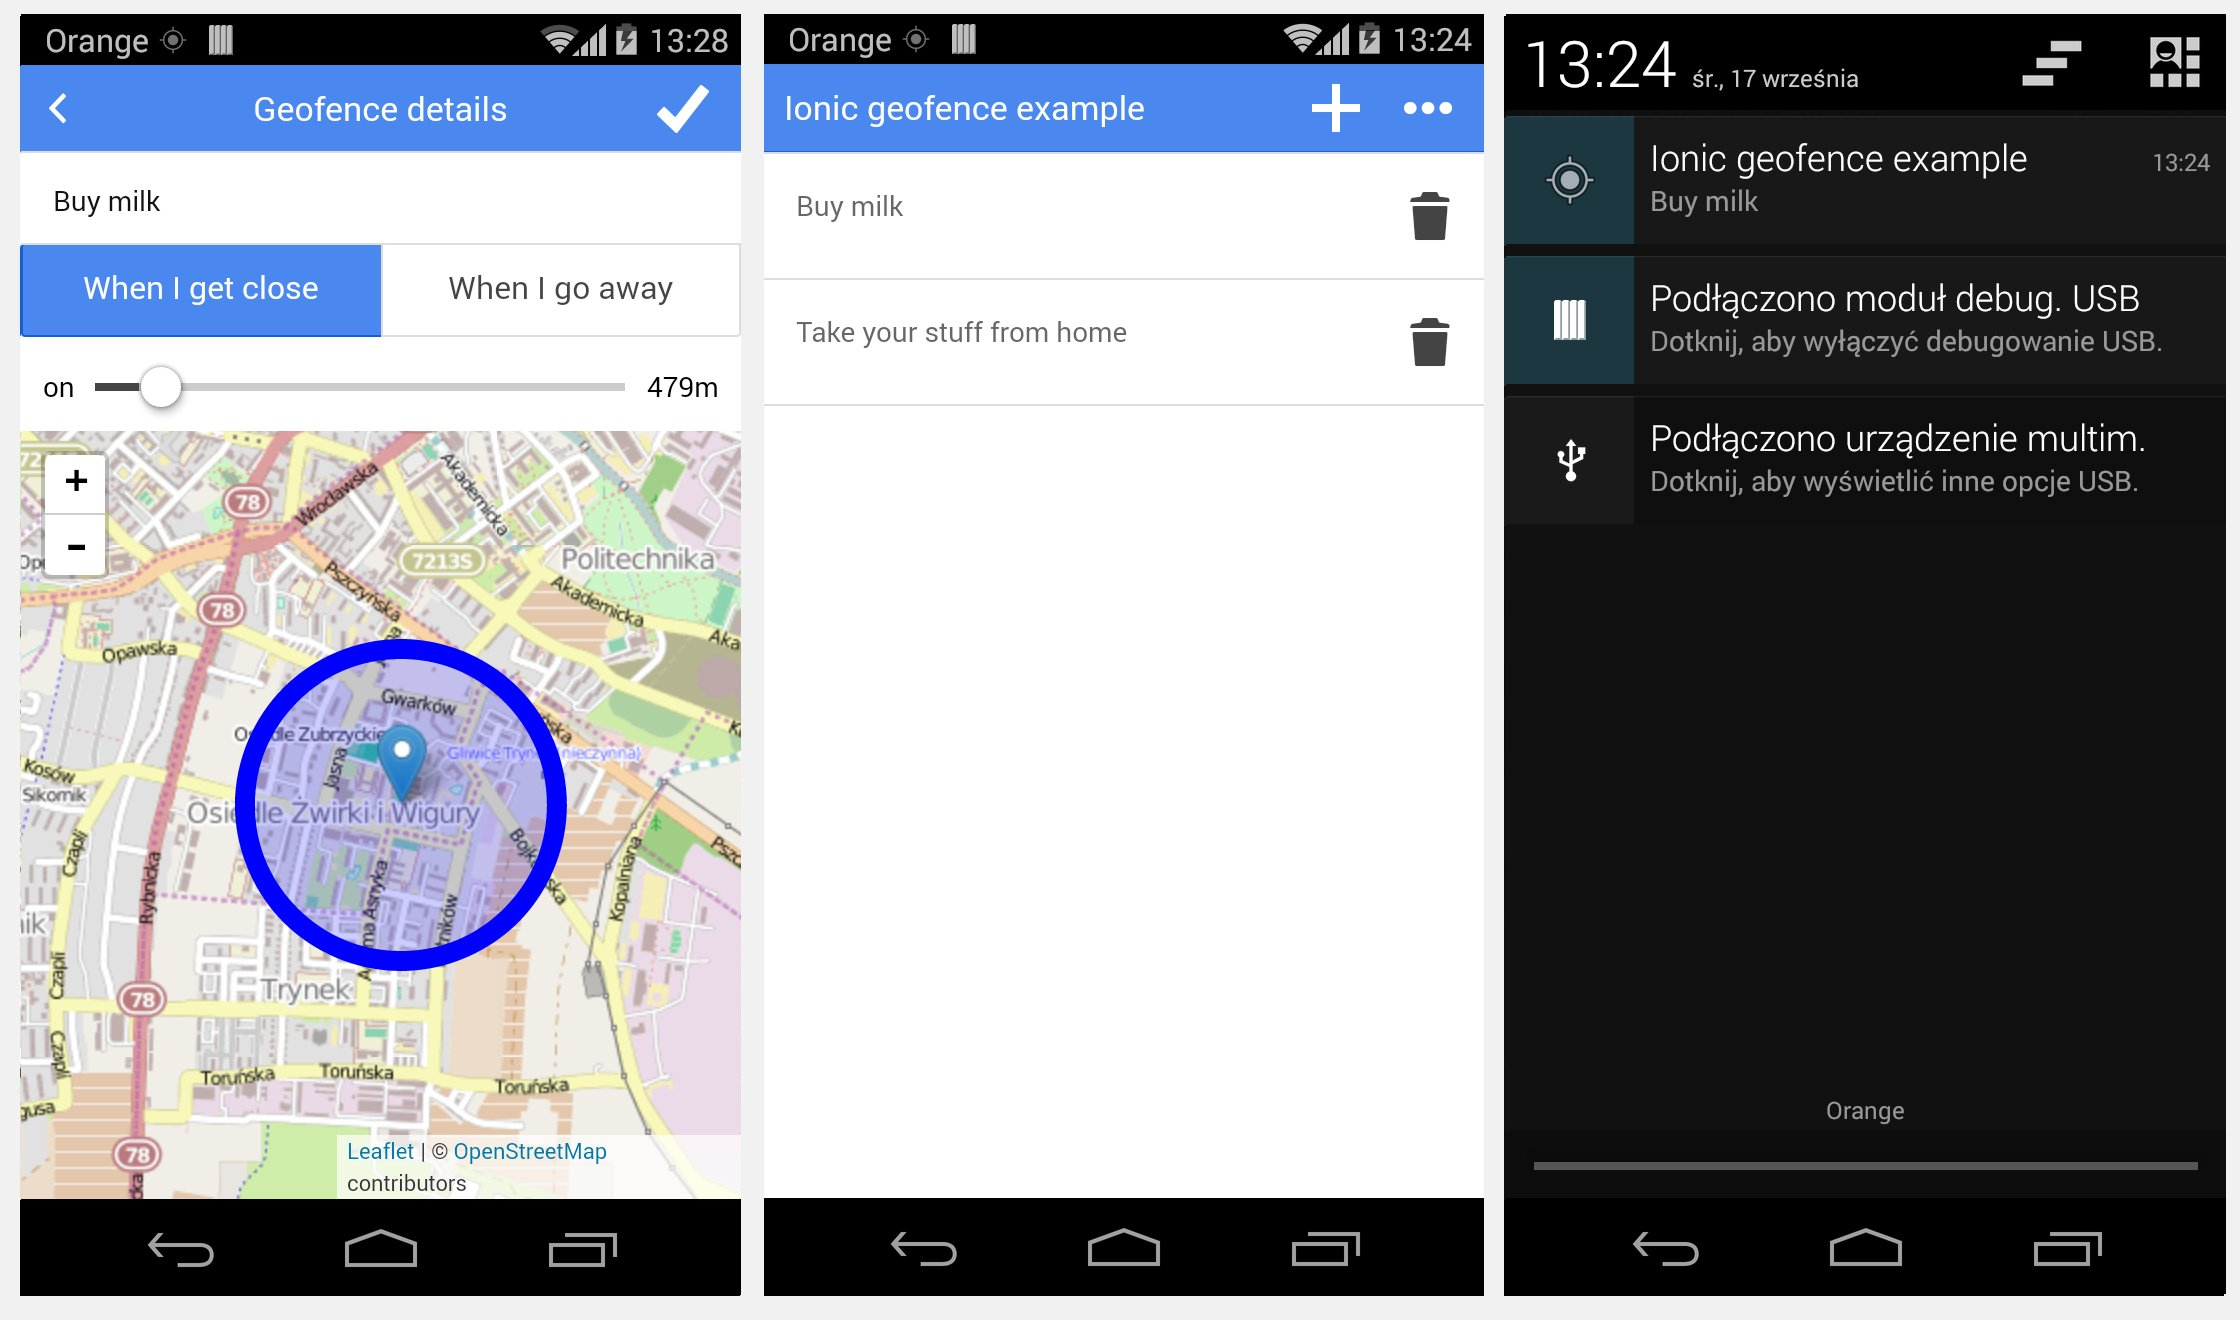 Ionic geofence application